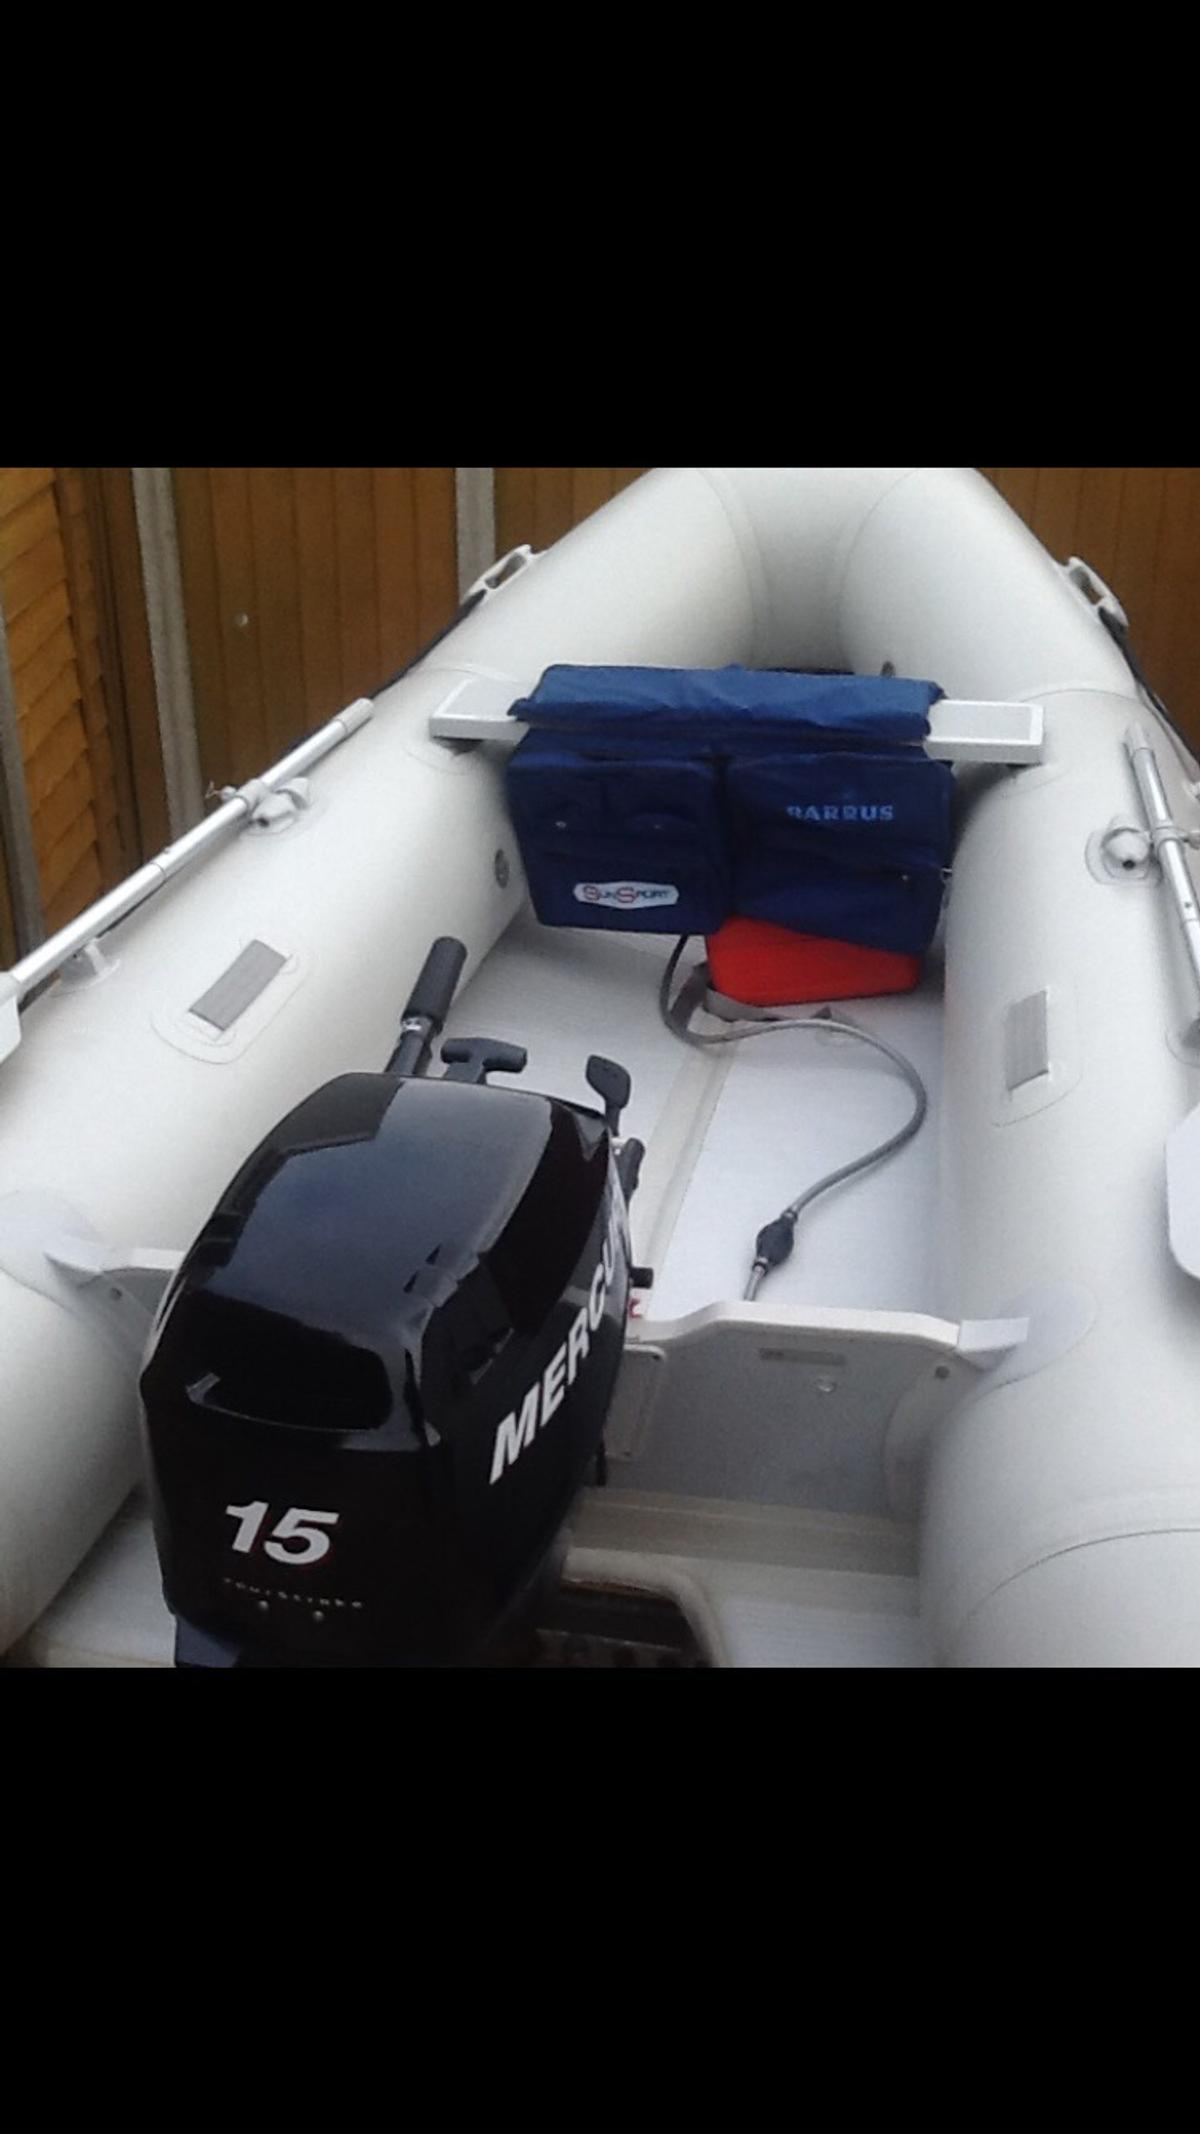 Sun Sport Arib 350 in LE9 Blaby for £1,700 00 for sale - Shpock